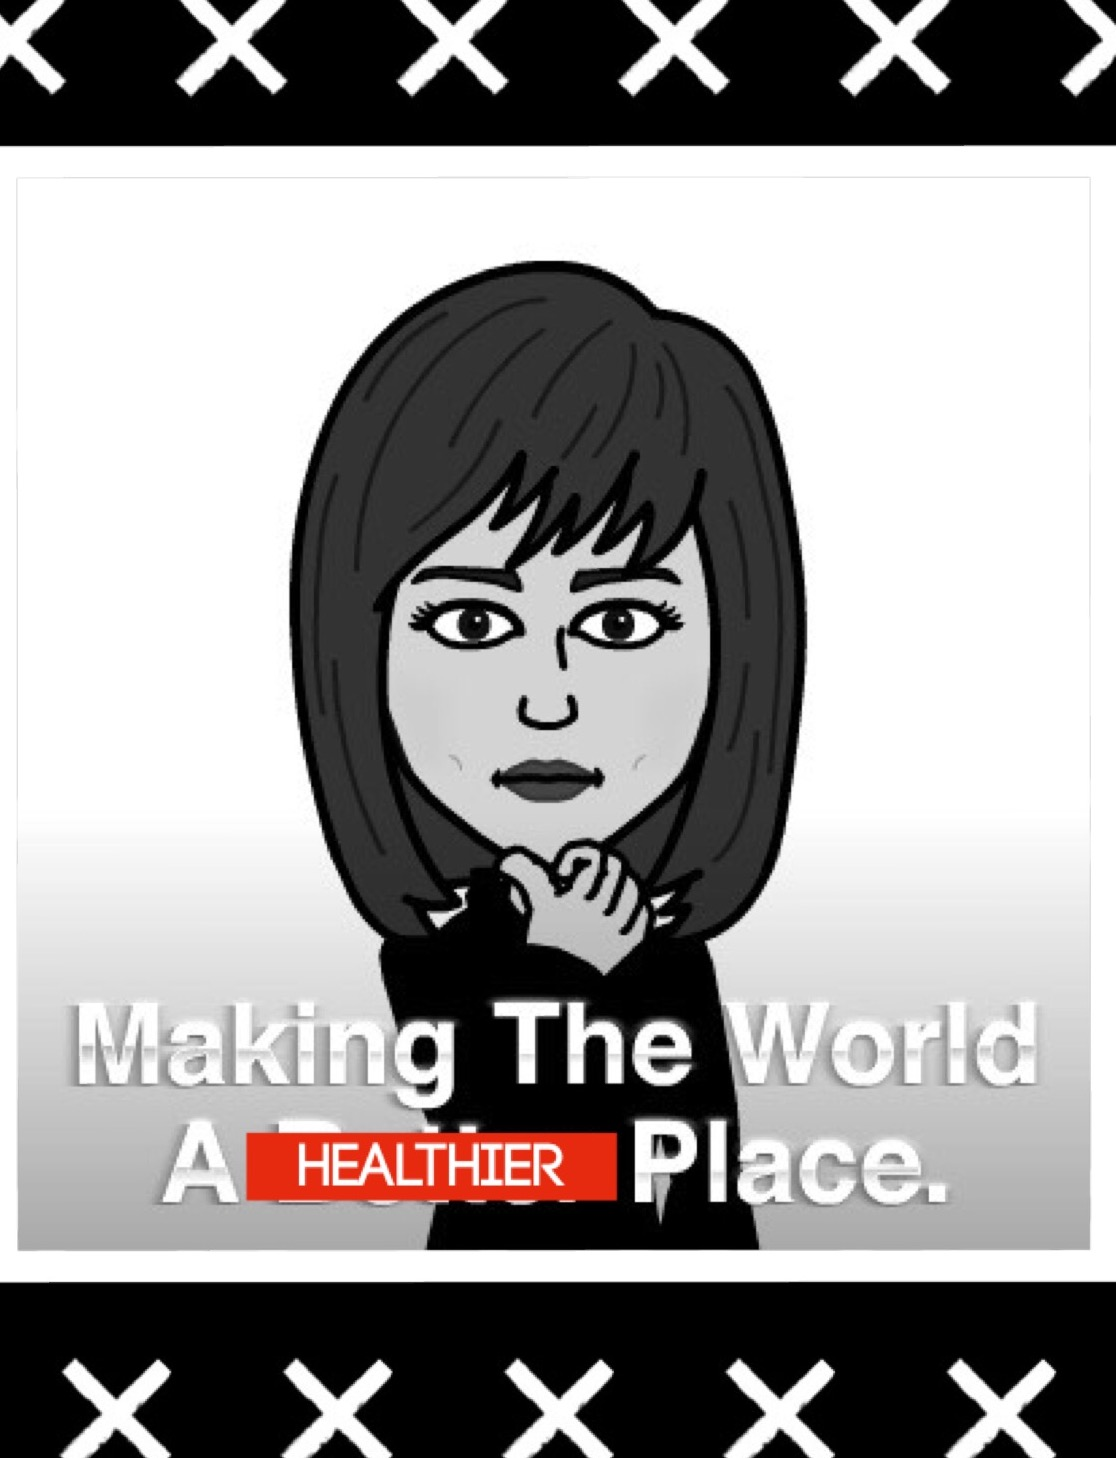 make the world a healthier place